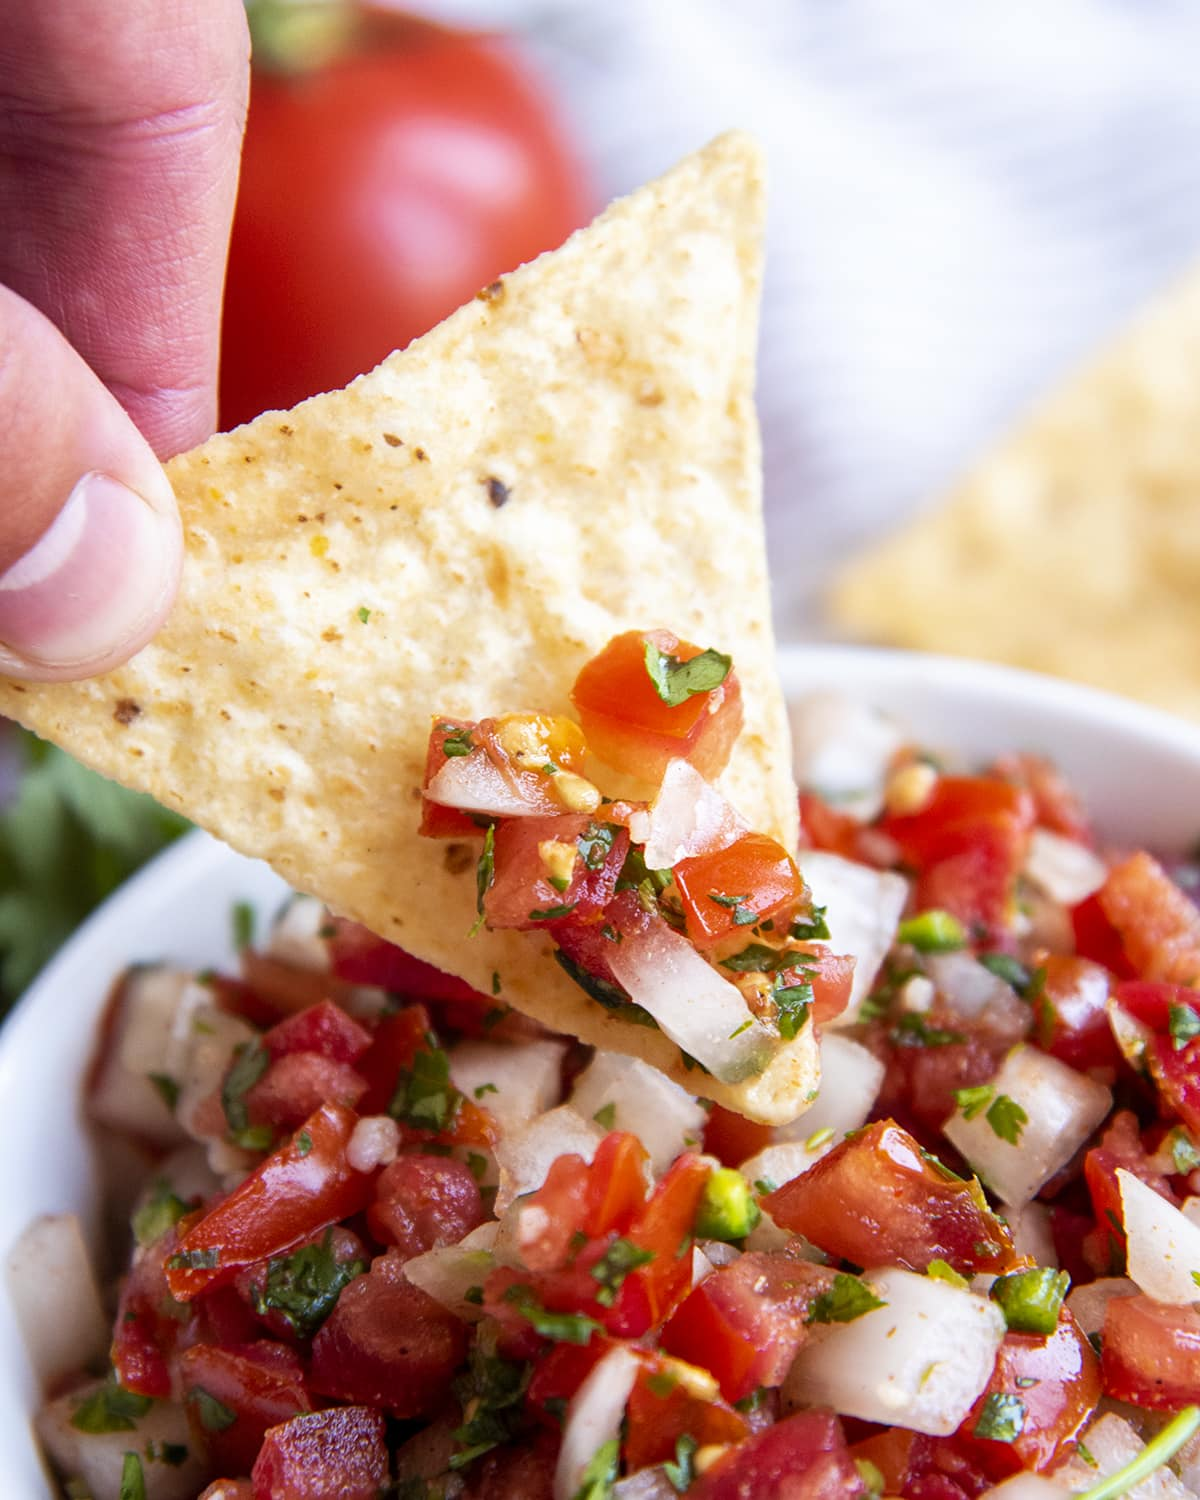 A tortilla chip dipping into a bowl of chunky salsa.